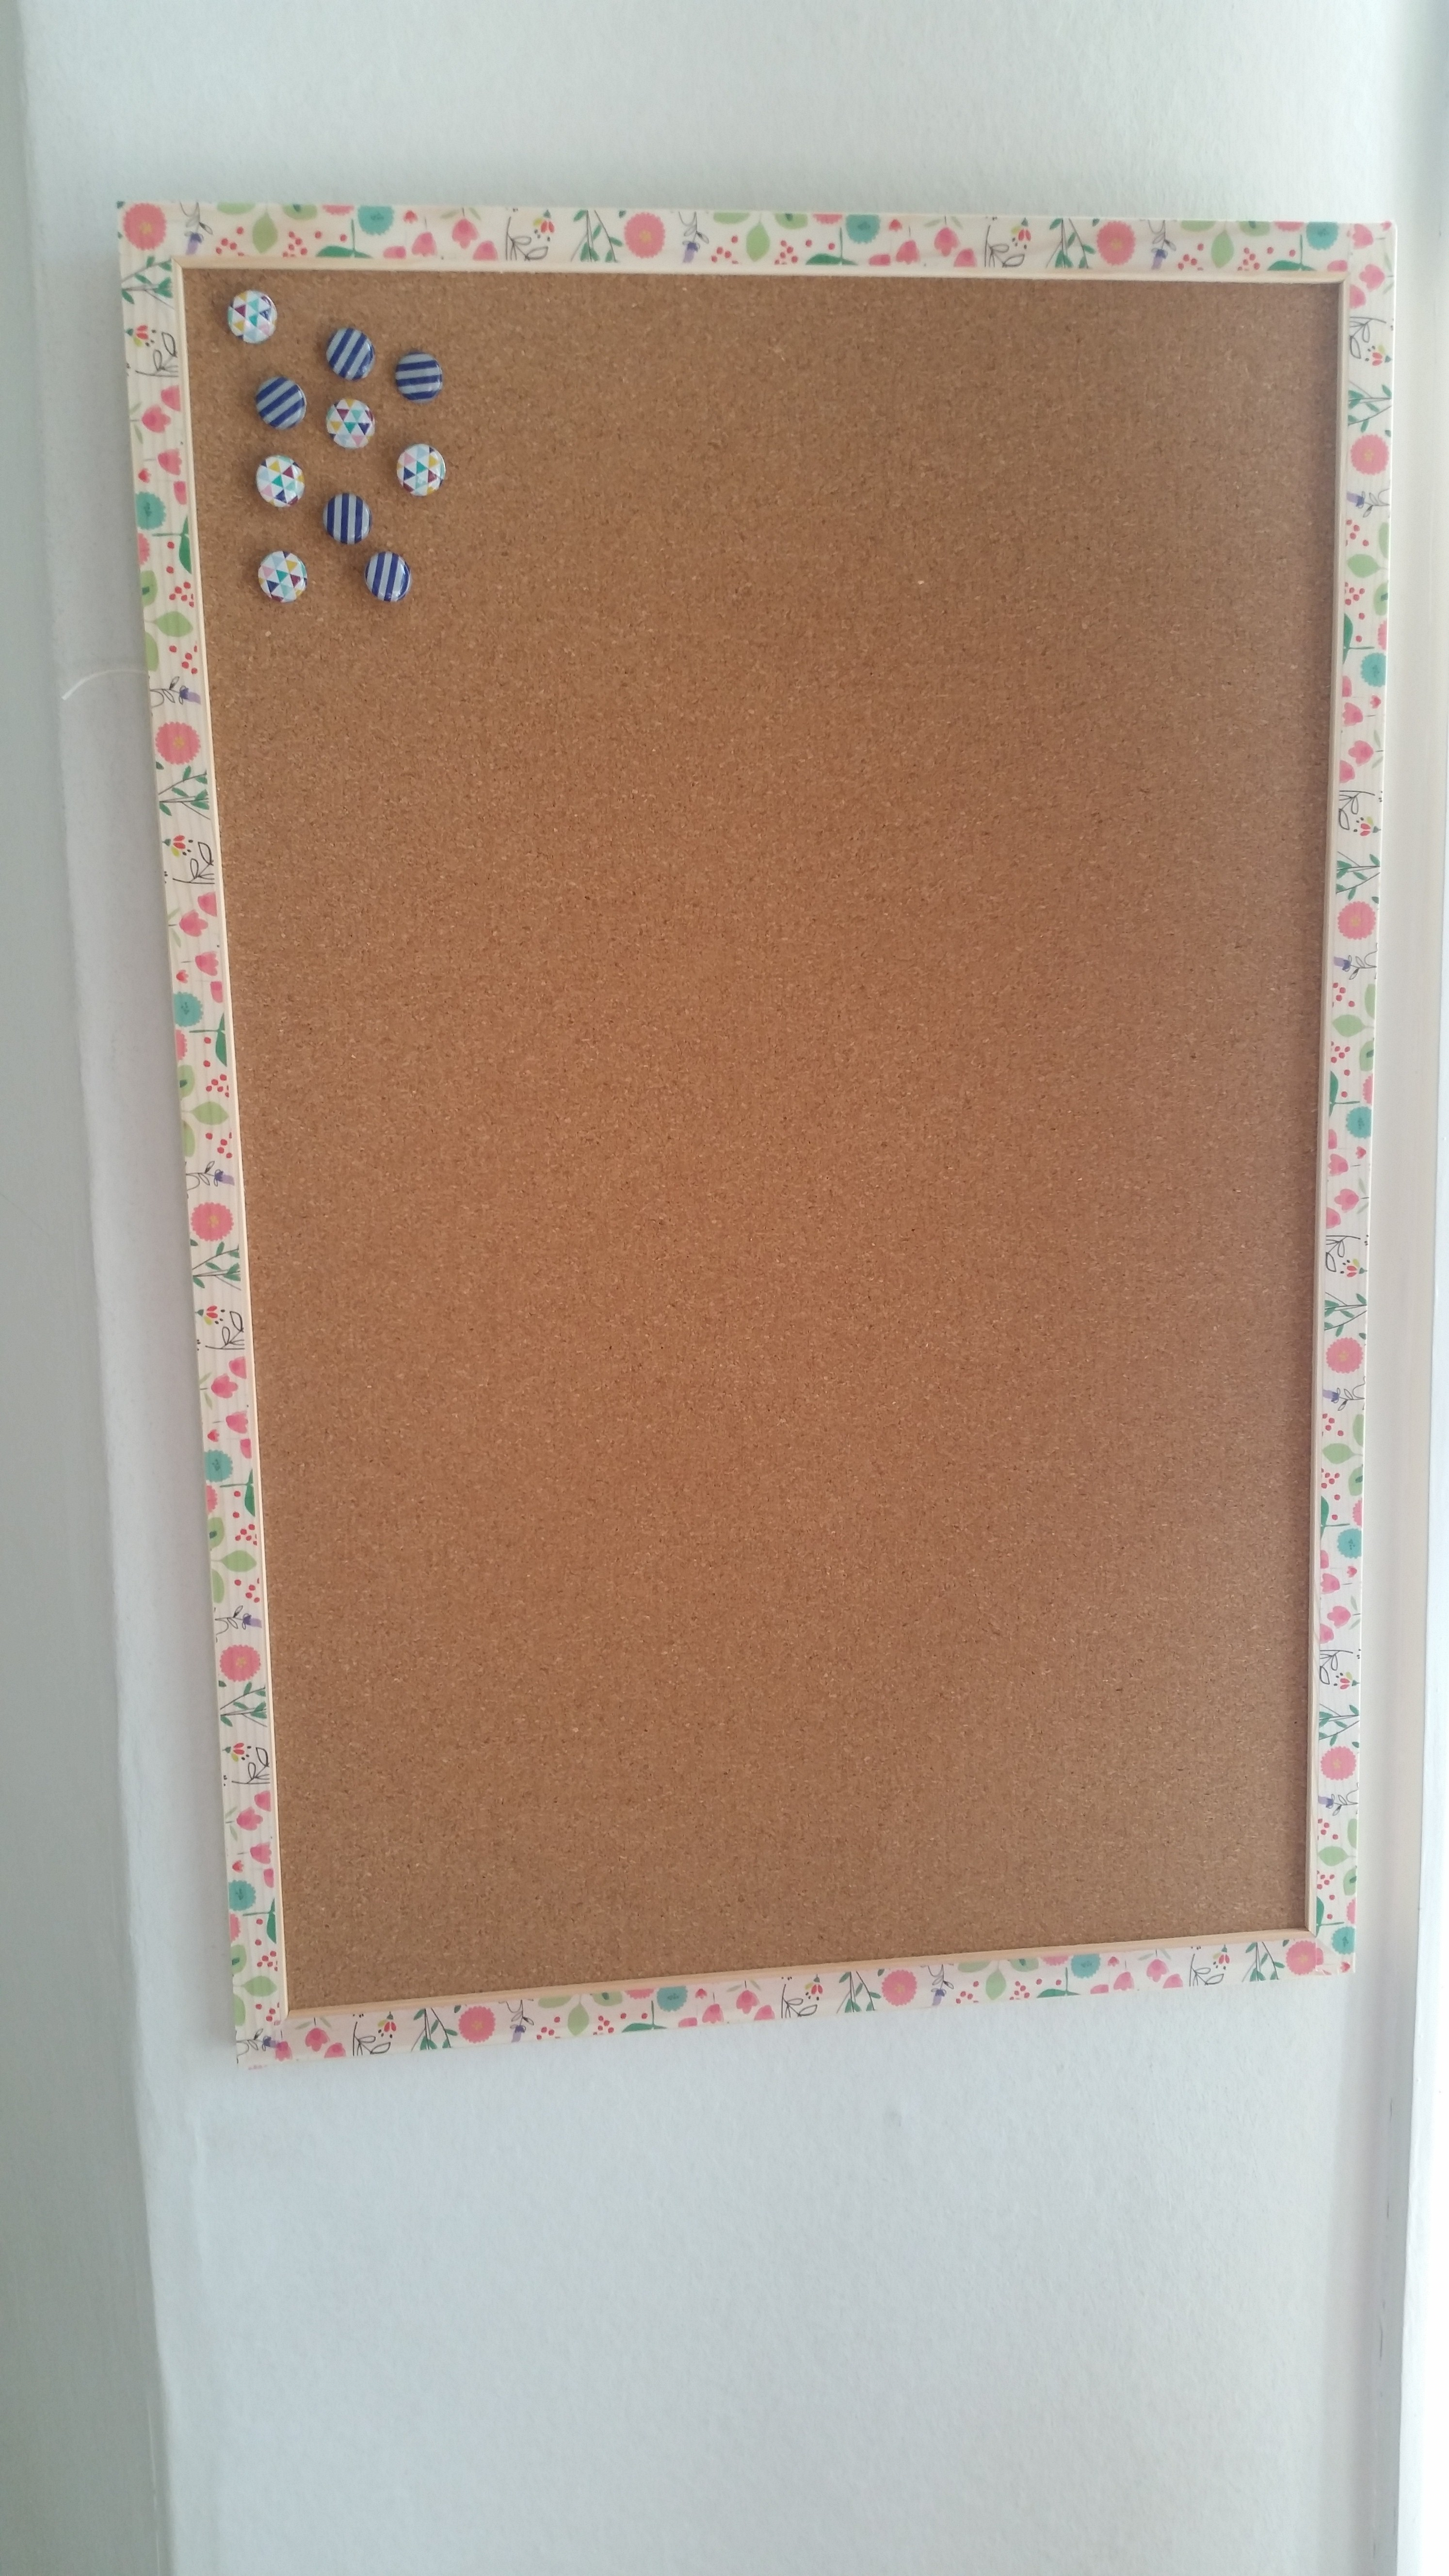 How to decorative notice board tatty designs for Cool notice board designs